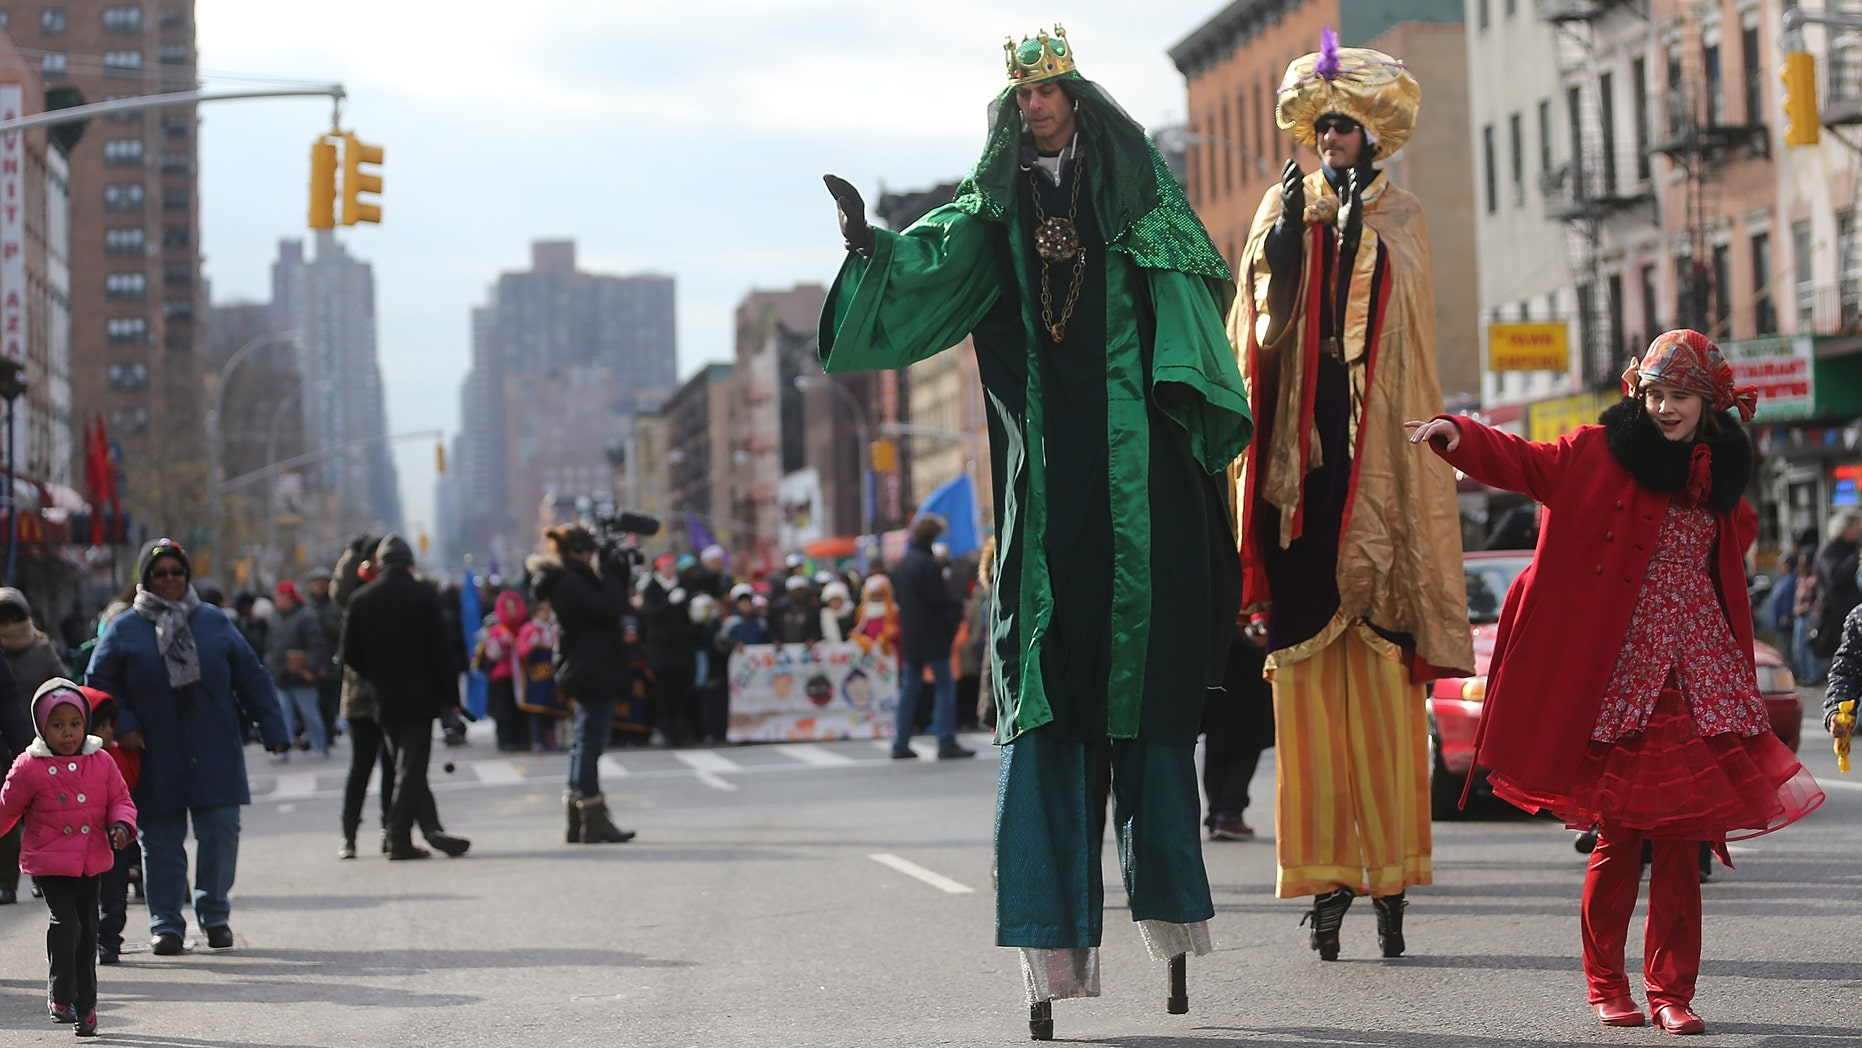 Revelers march during the Three Kings Day Parade in East Harlem on January 4, 2013 in New York City.